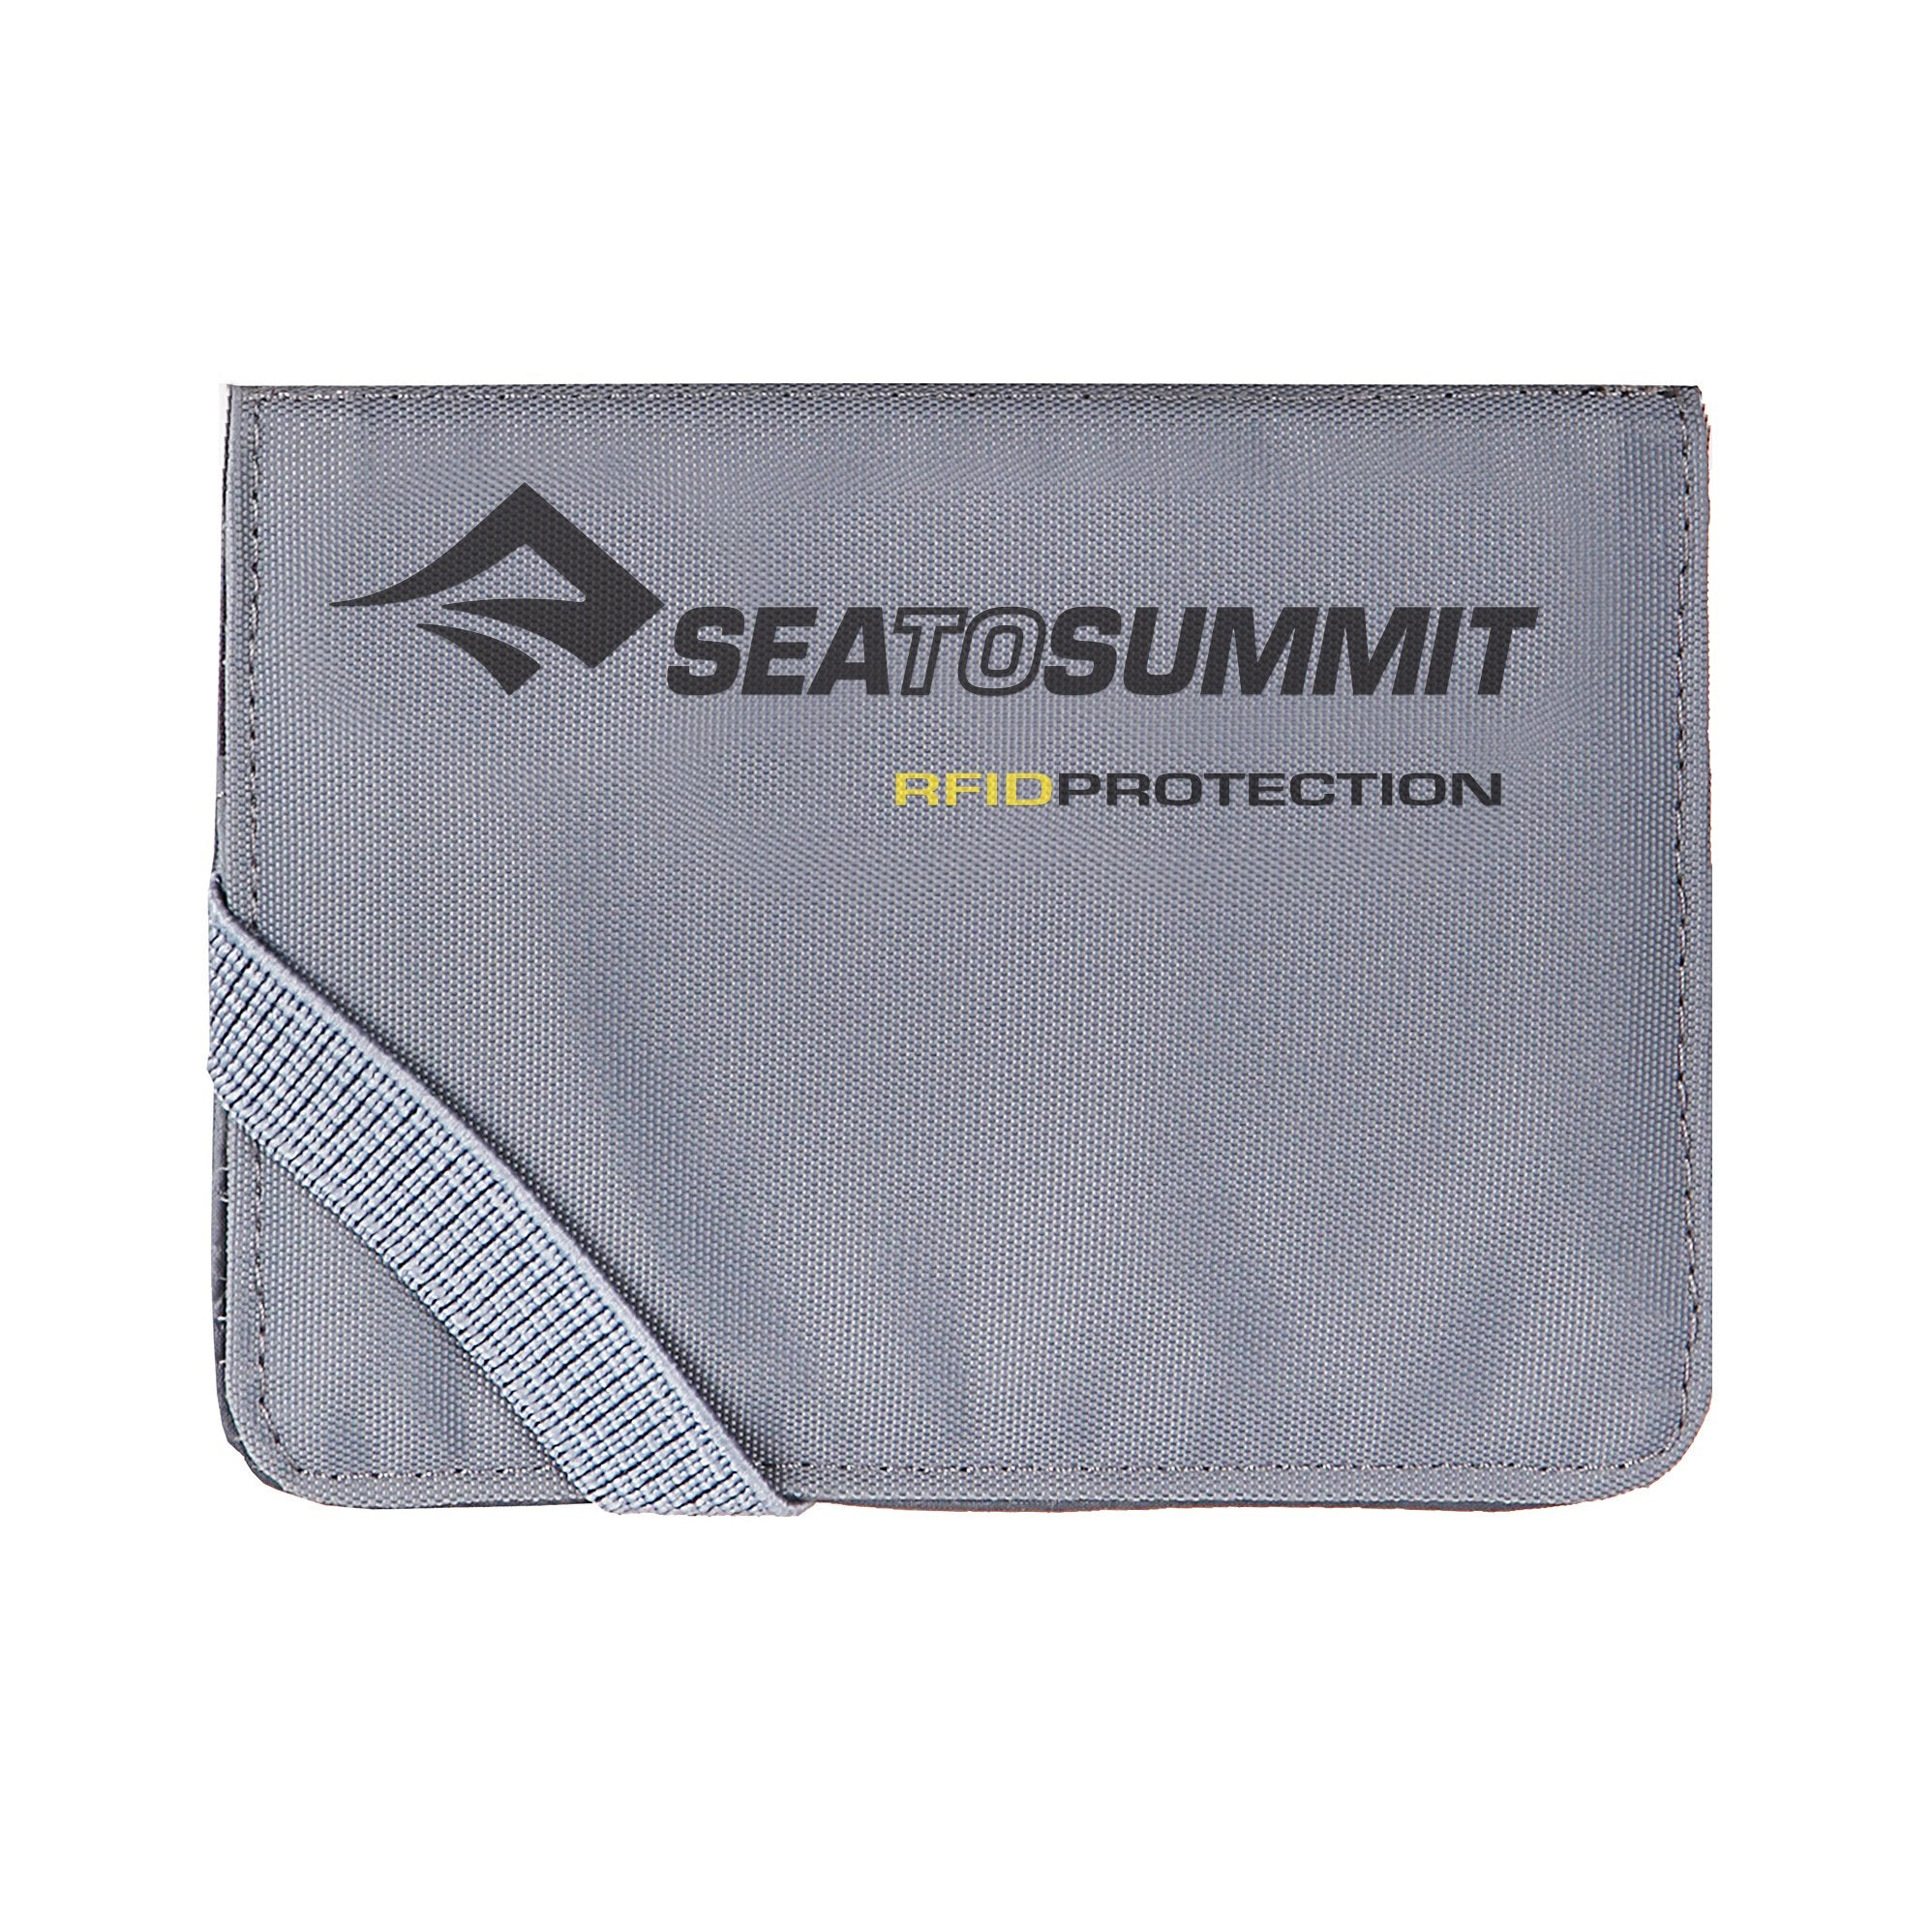 Traveling Light RFID Card Holder